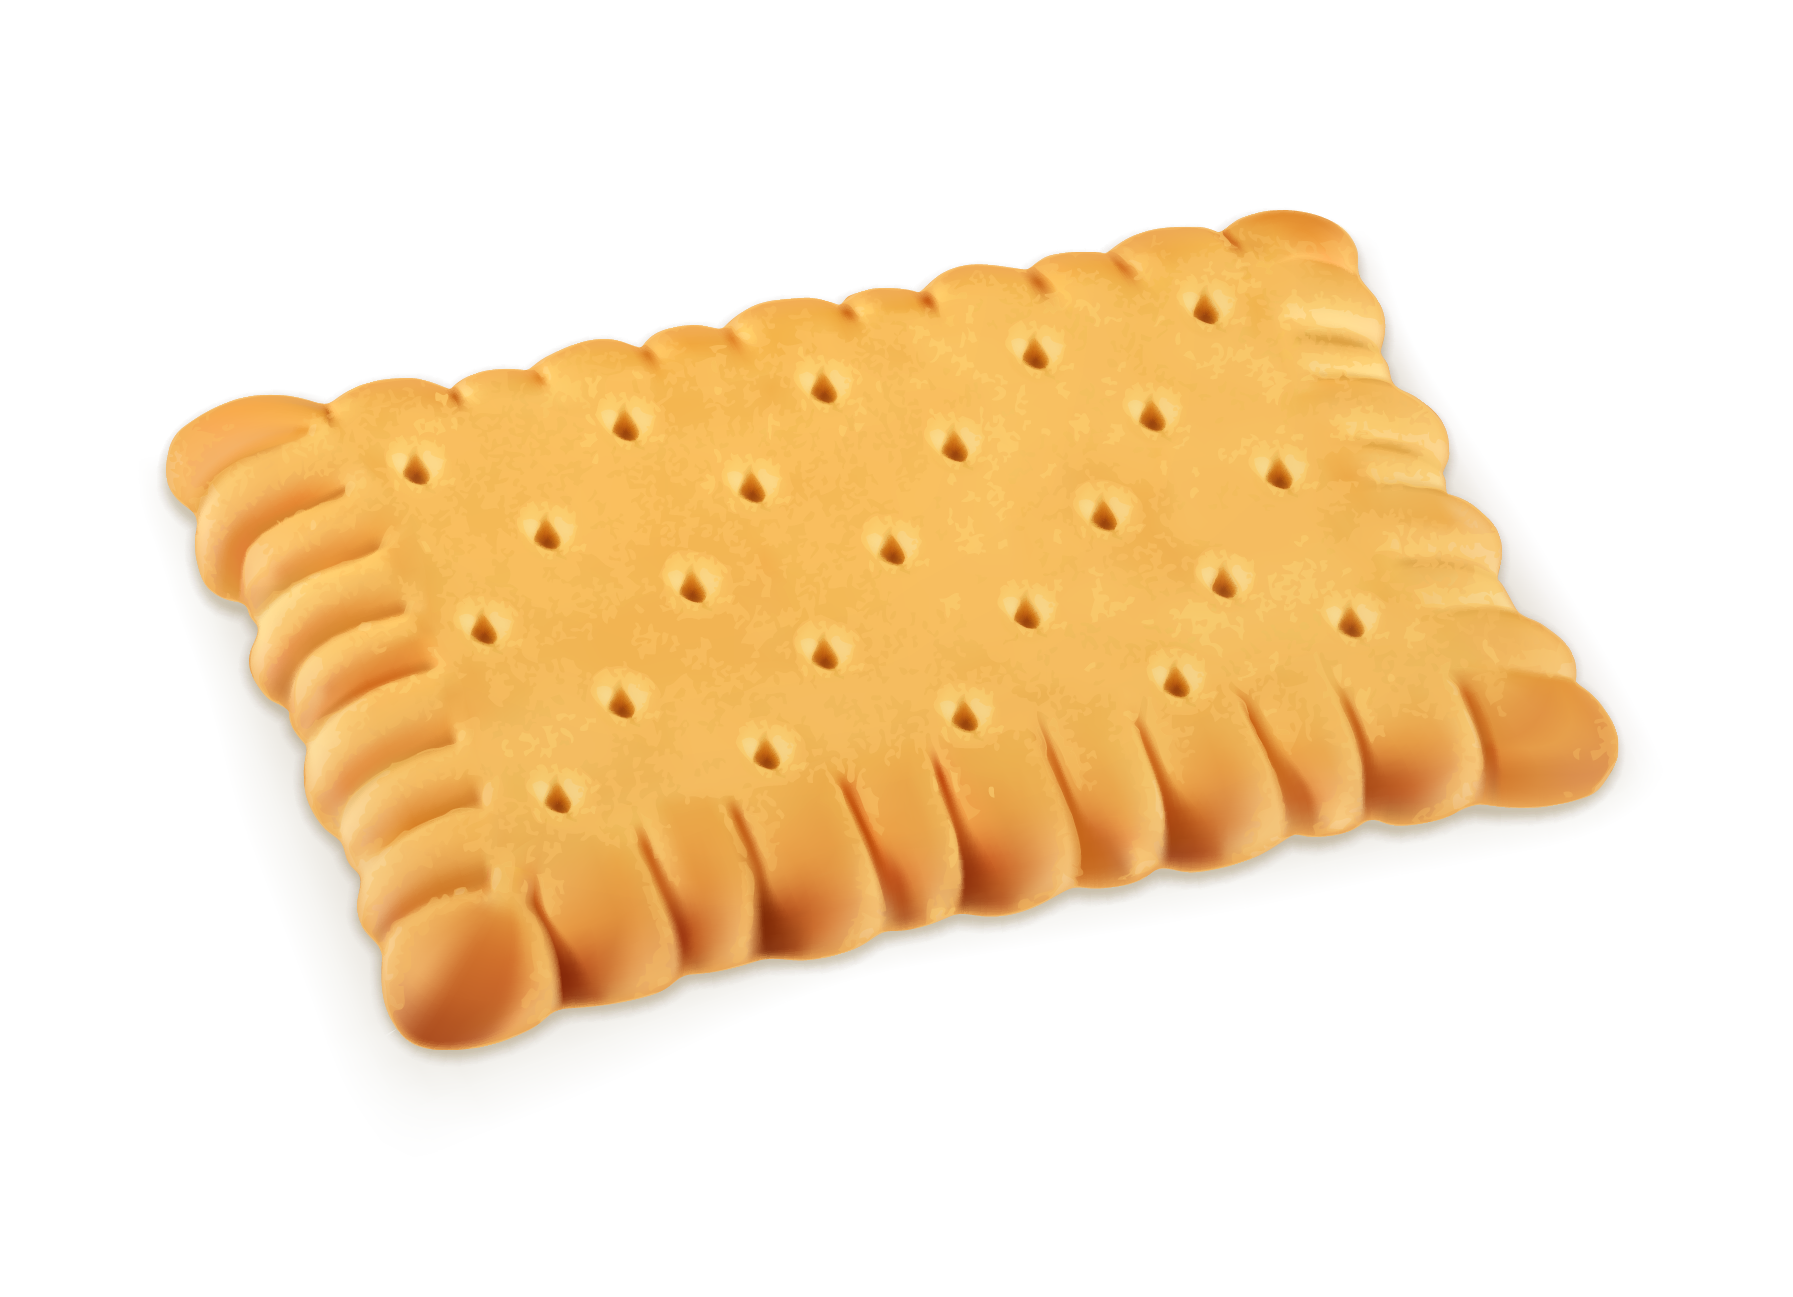 Biscuit chocolate sandwich chip. Cracker clipart food packaging